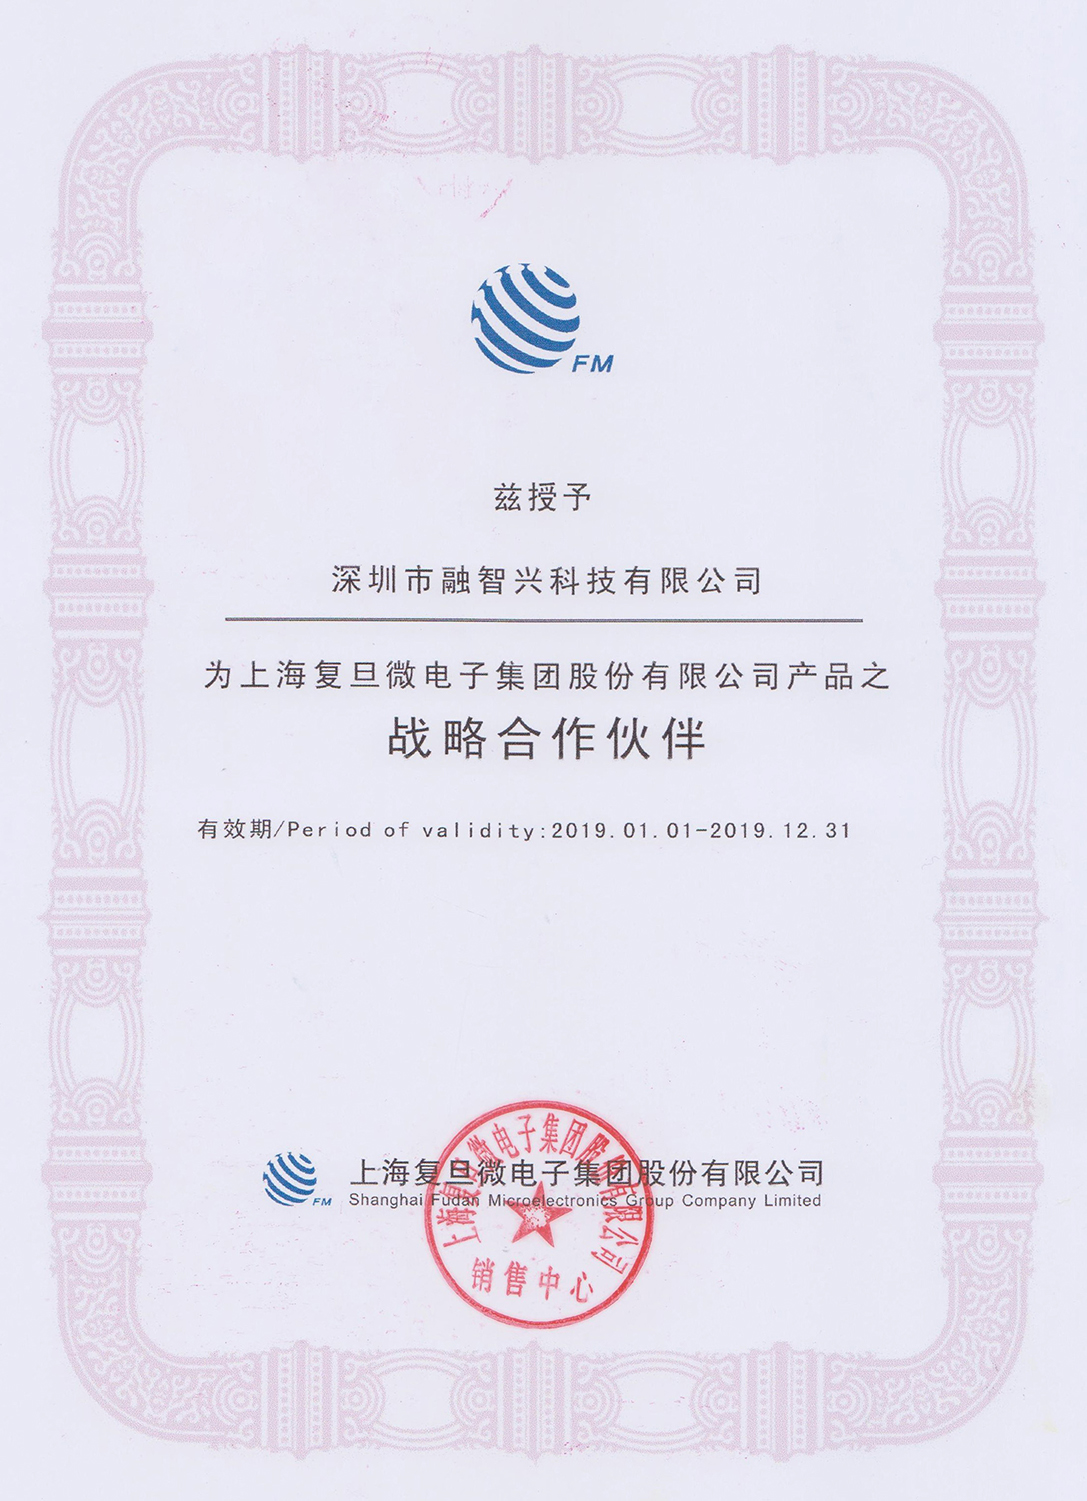 Shanghai Fudan Microelectronics License